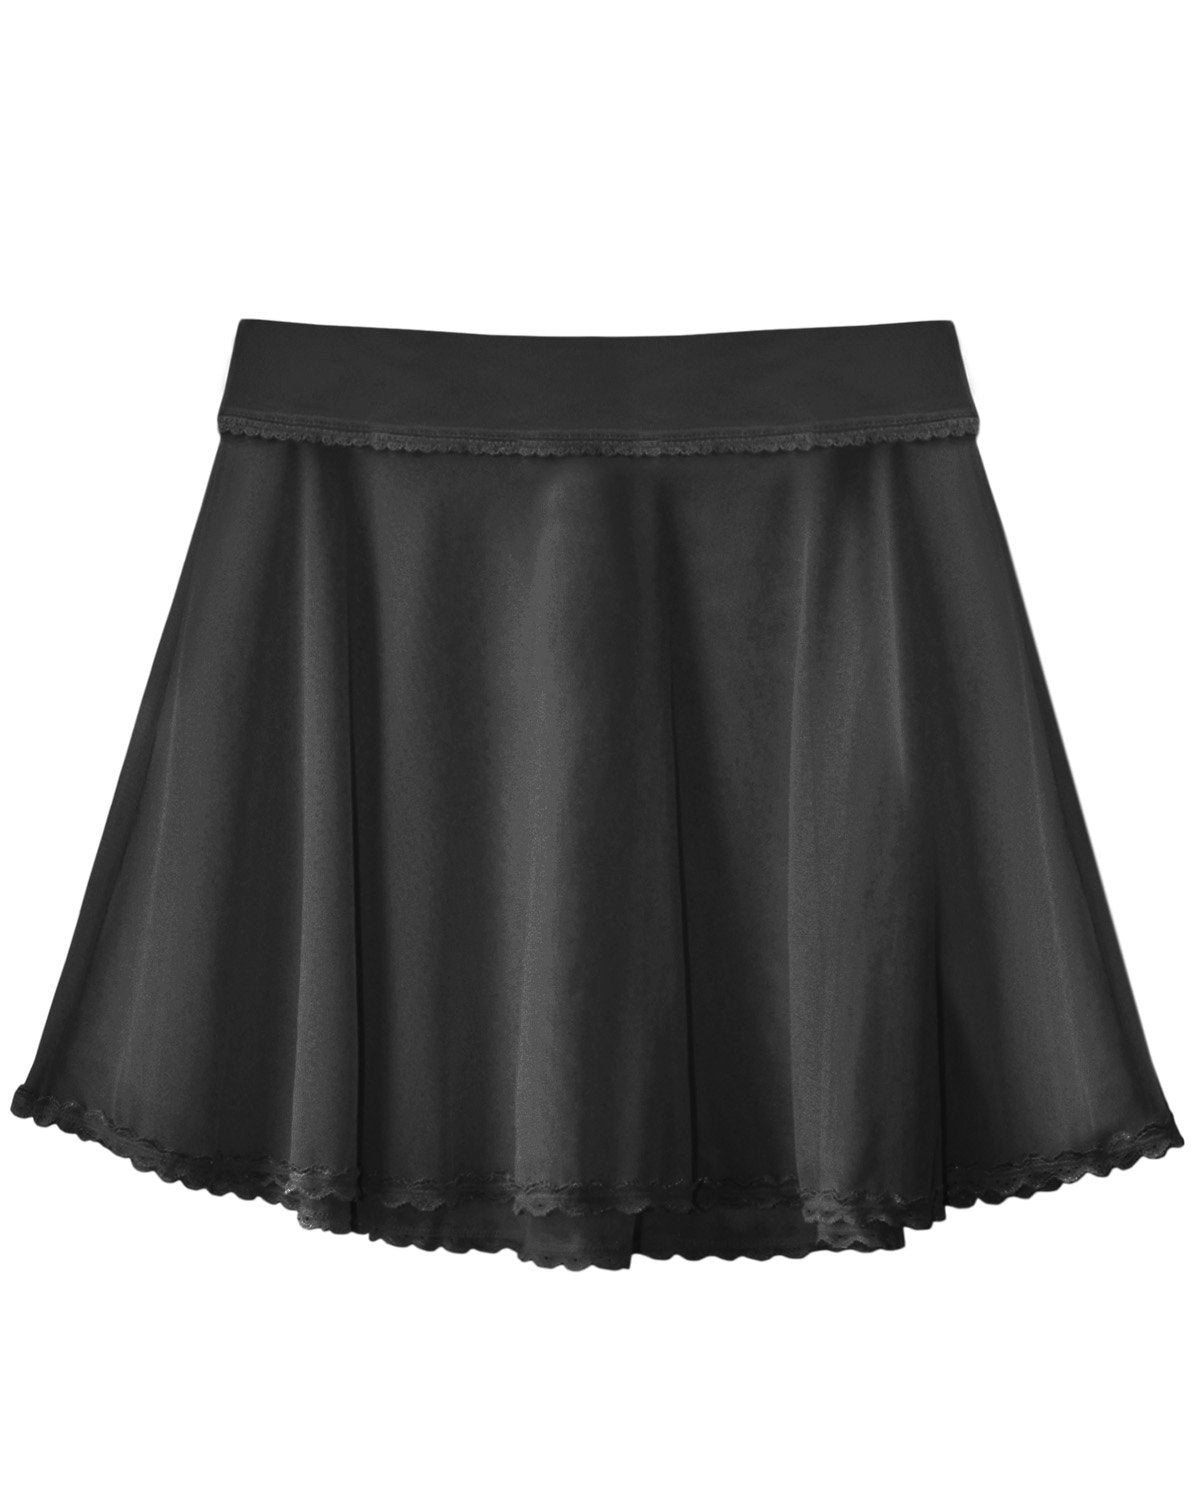 Sheer Flounce Skirt in Black - XS-XL left!